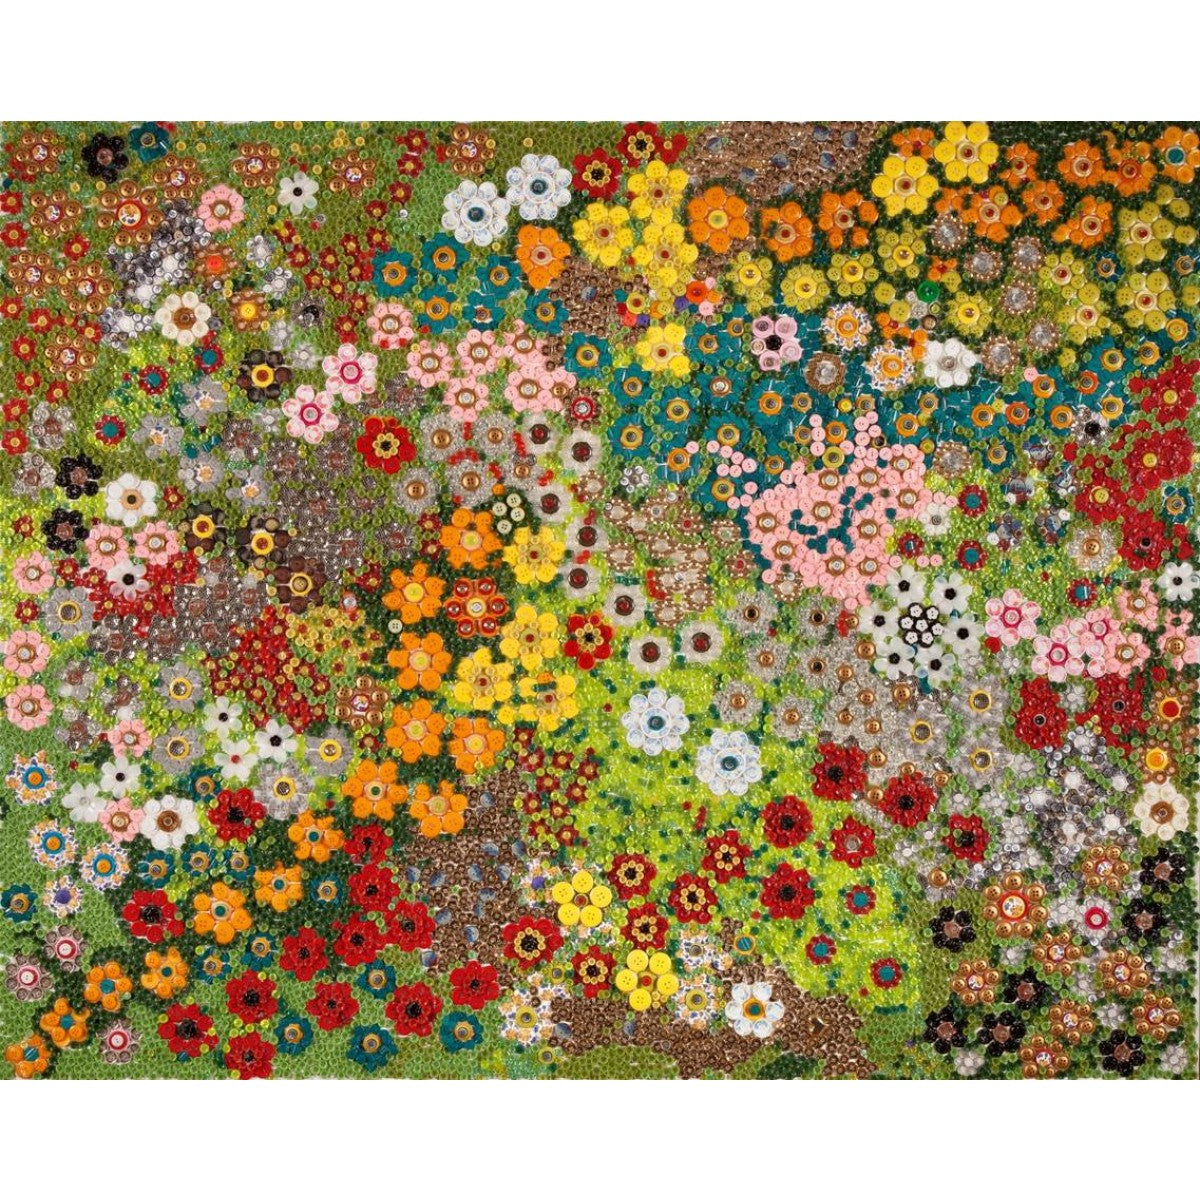 Flowers in Buttons_4 by Tal Sher